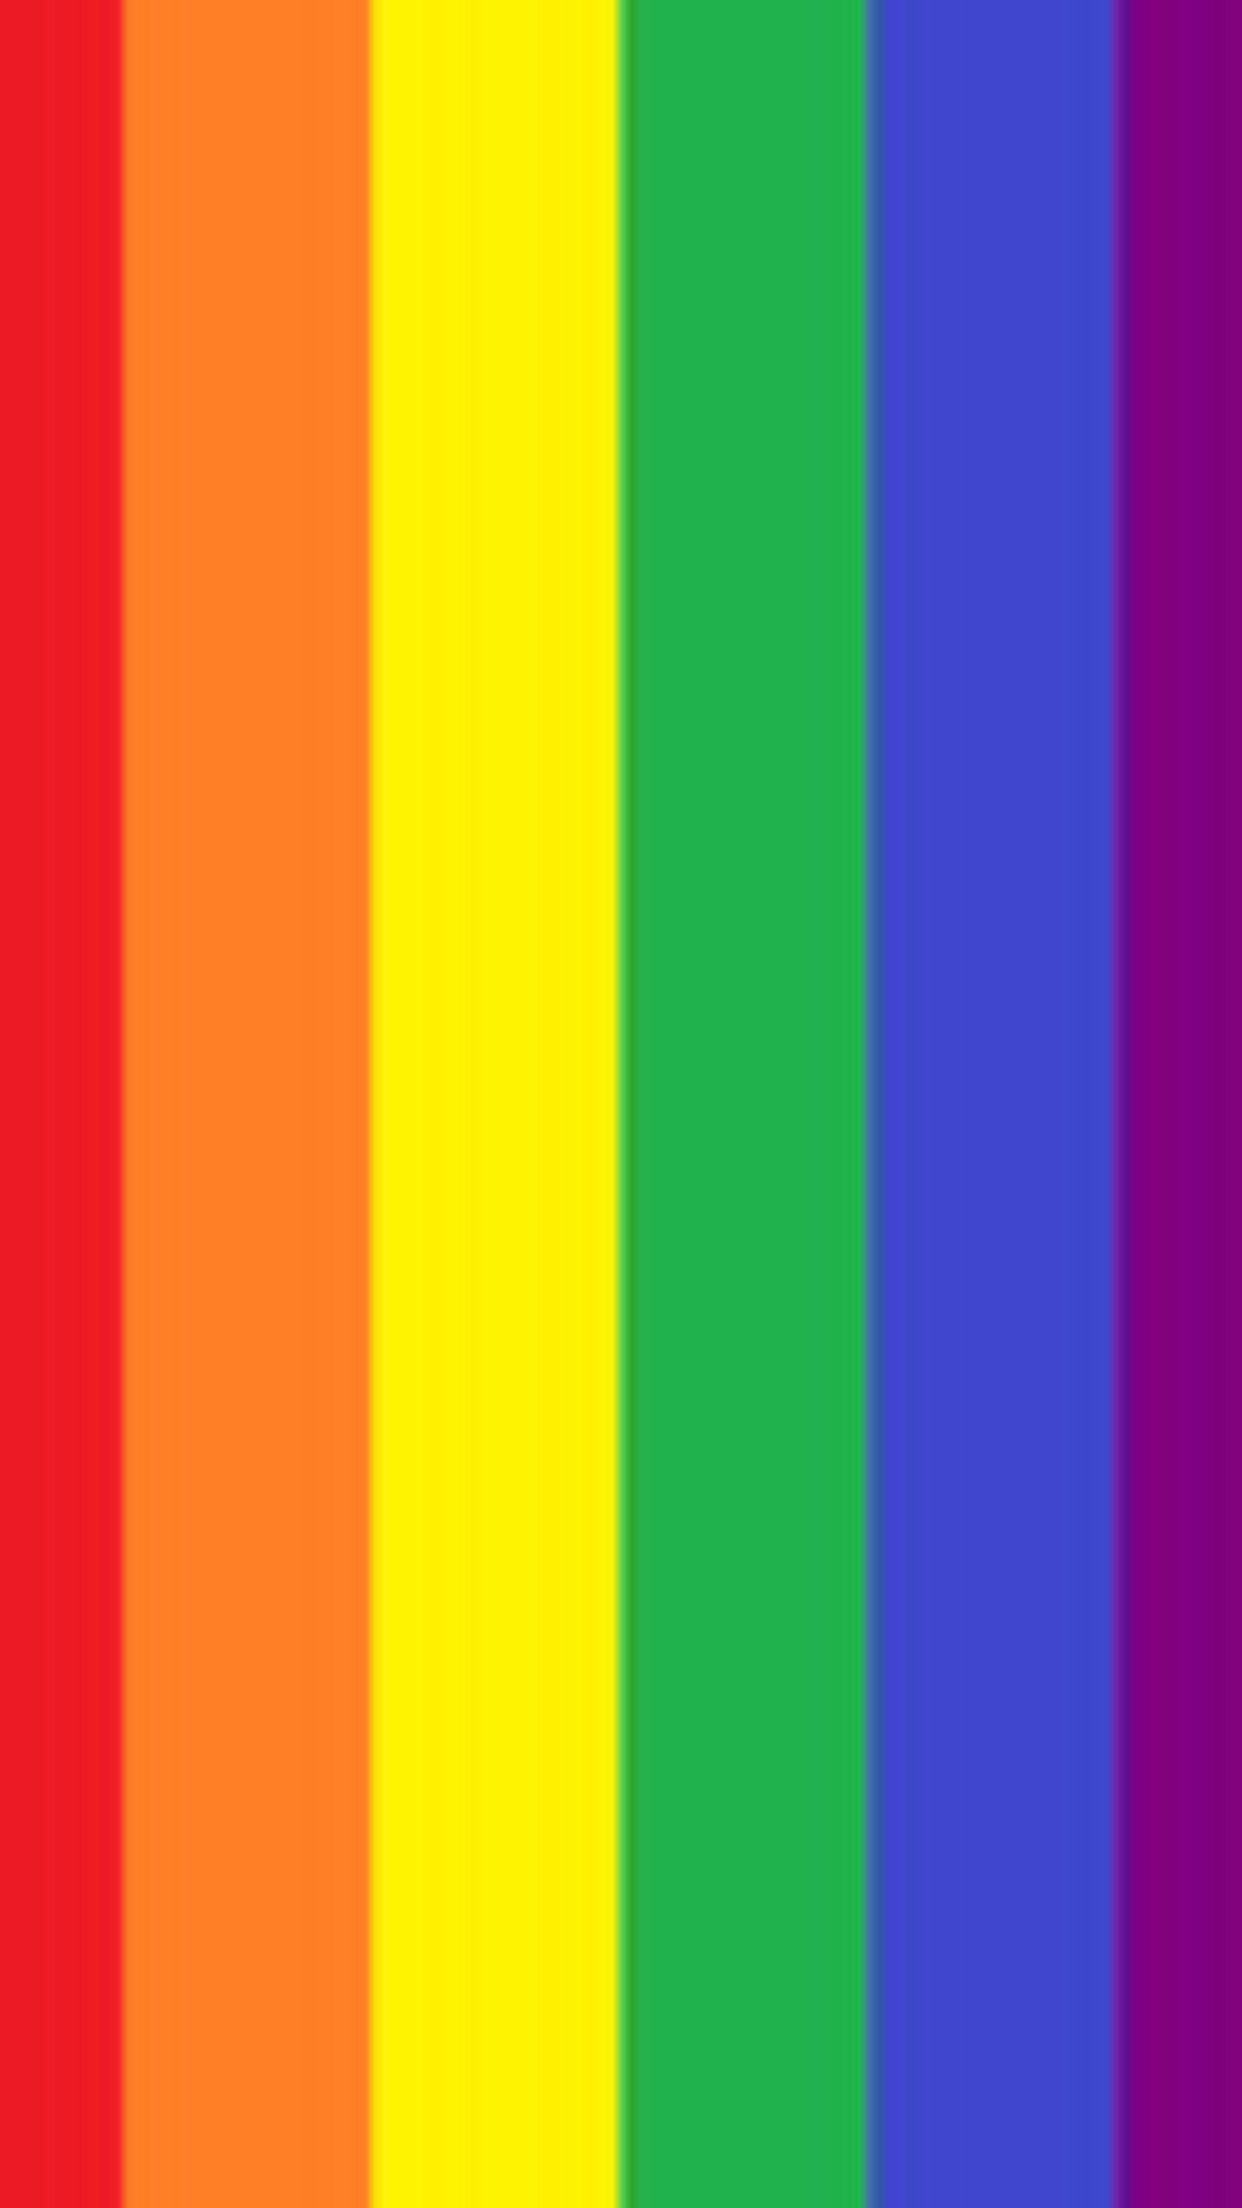 1242x2208 Rainbow Pride Iphone Wallpapers L G B T Pinterest Rainbow Pride Rainbow Wallpaper Iphone Background Images Iphone Wallpaper